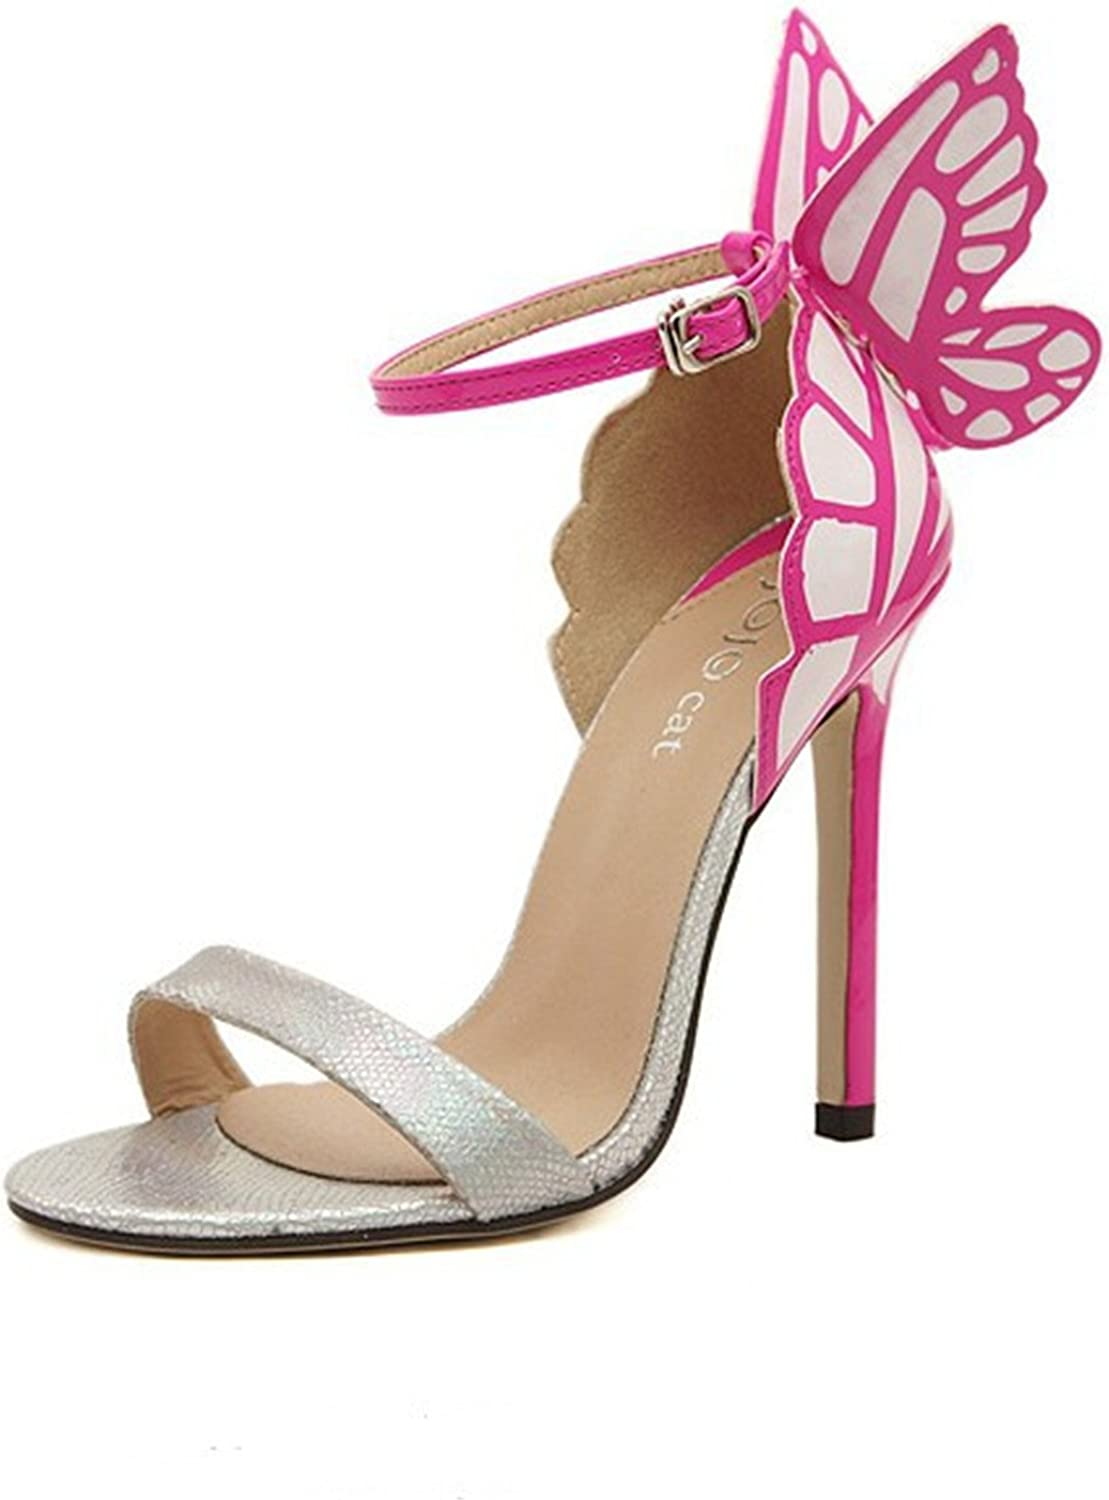 Robert Westbrook Women Wedding High Heels colorful Butterfly Heeled Sandals Pumps Bow Patry shoes Woman Bridal Pumps Silver 7.5